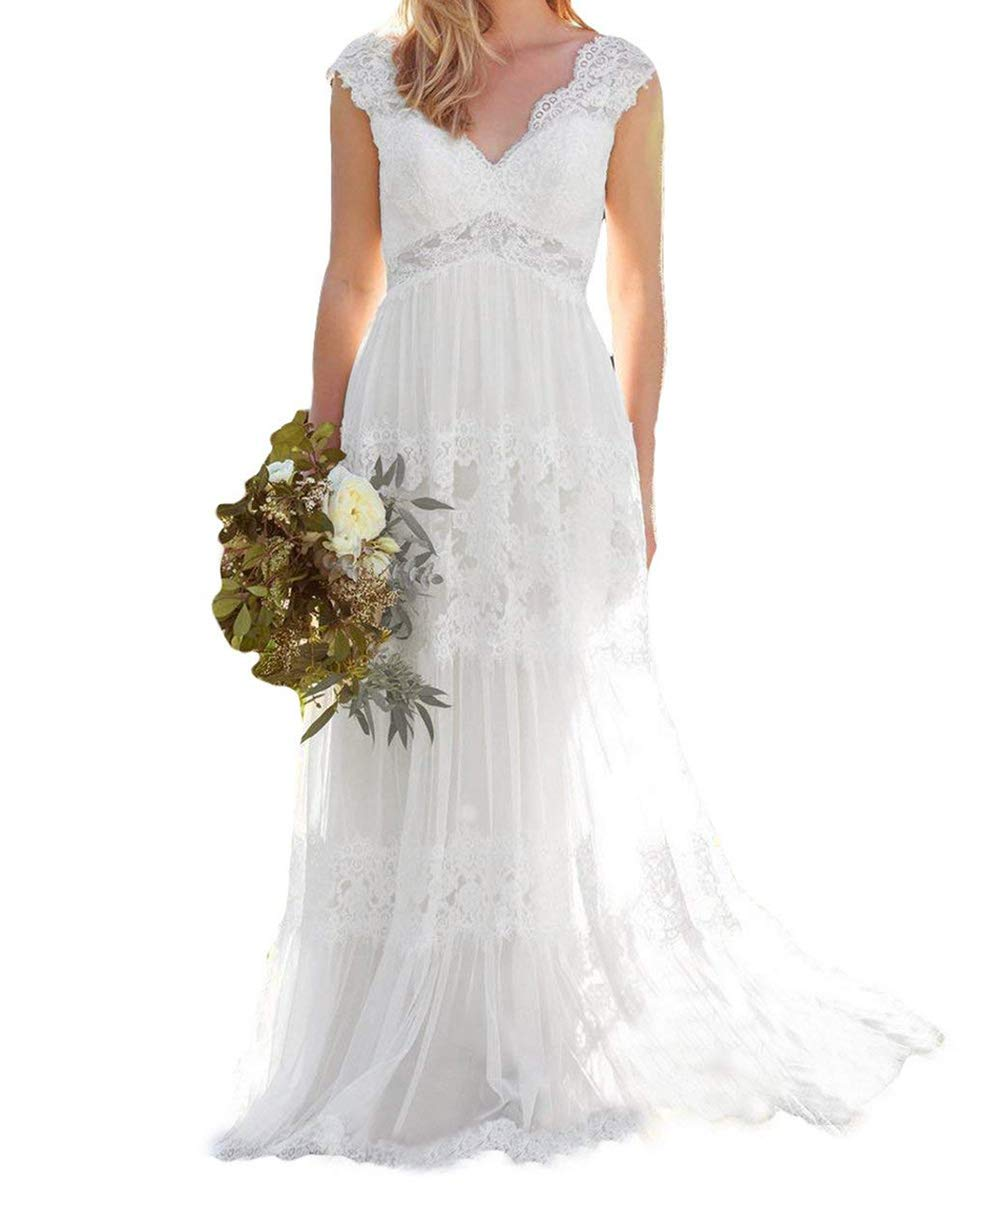 Fitty Lell Womens Vintage V Neck Wedding Dresses Long Sleeves Lace Bridal Gowns